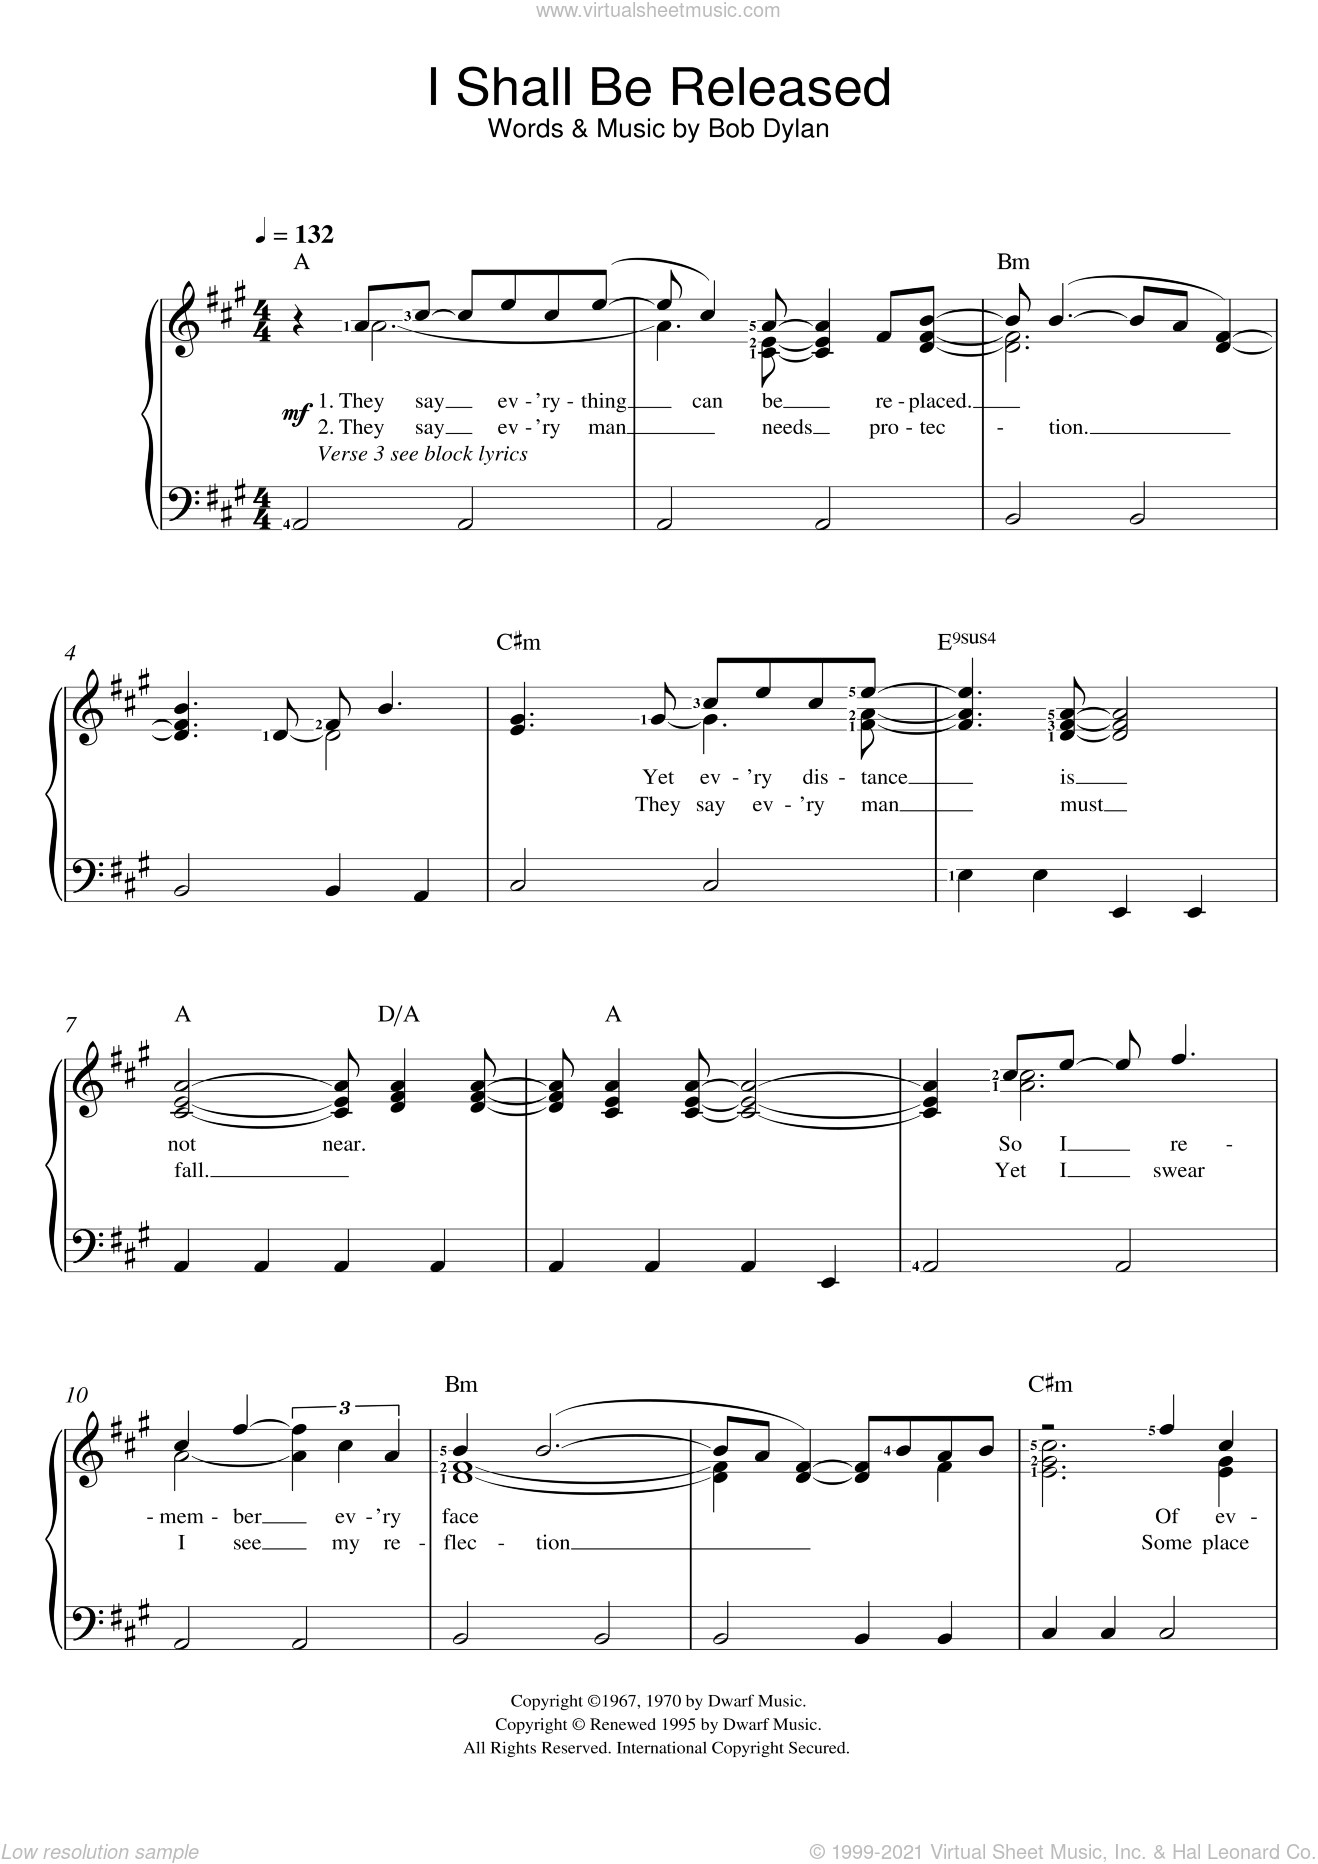 I Shall Be Released sheet music for voice and piano by Bob Dylan, intermediate skill level